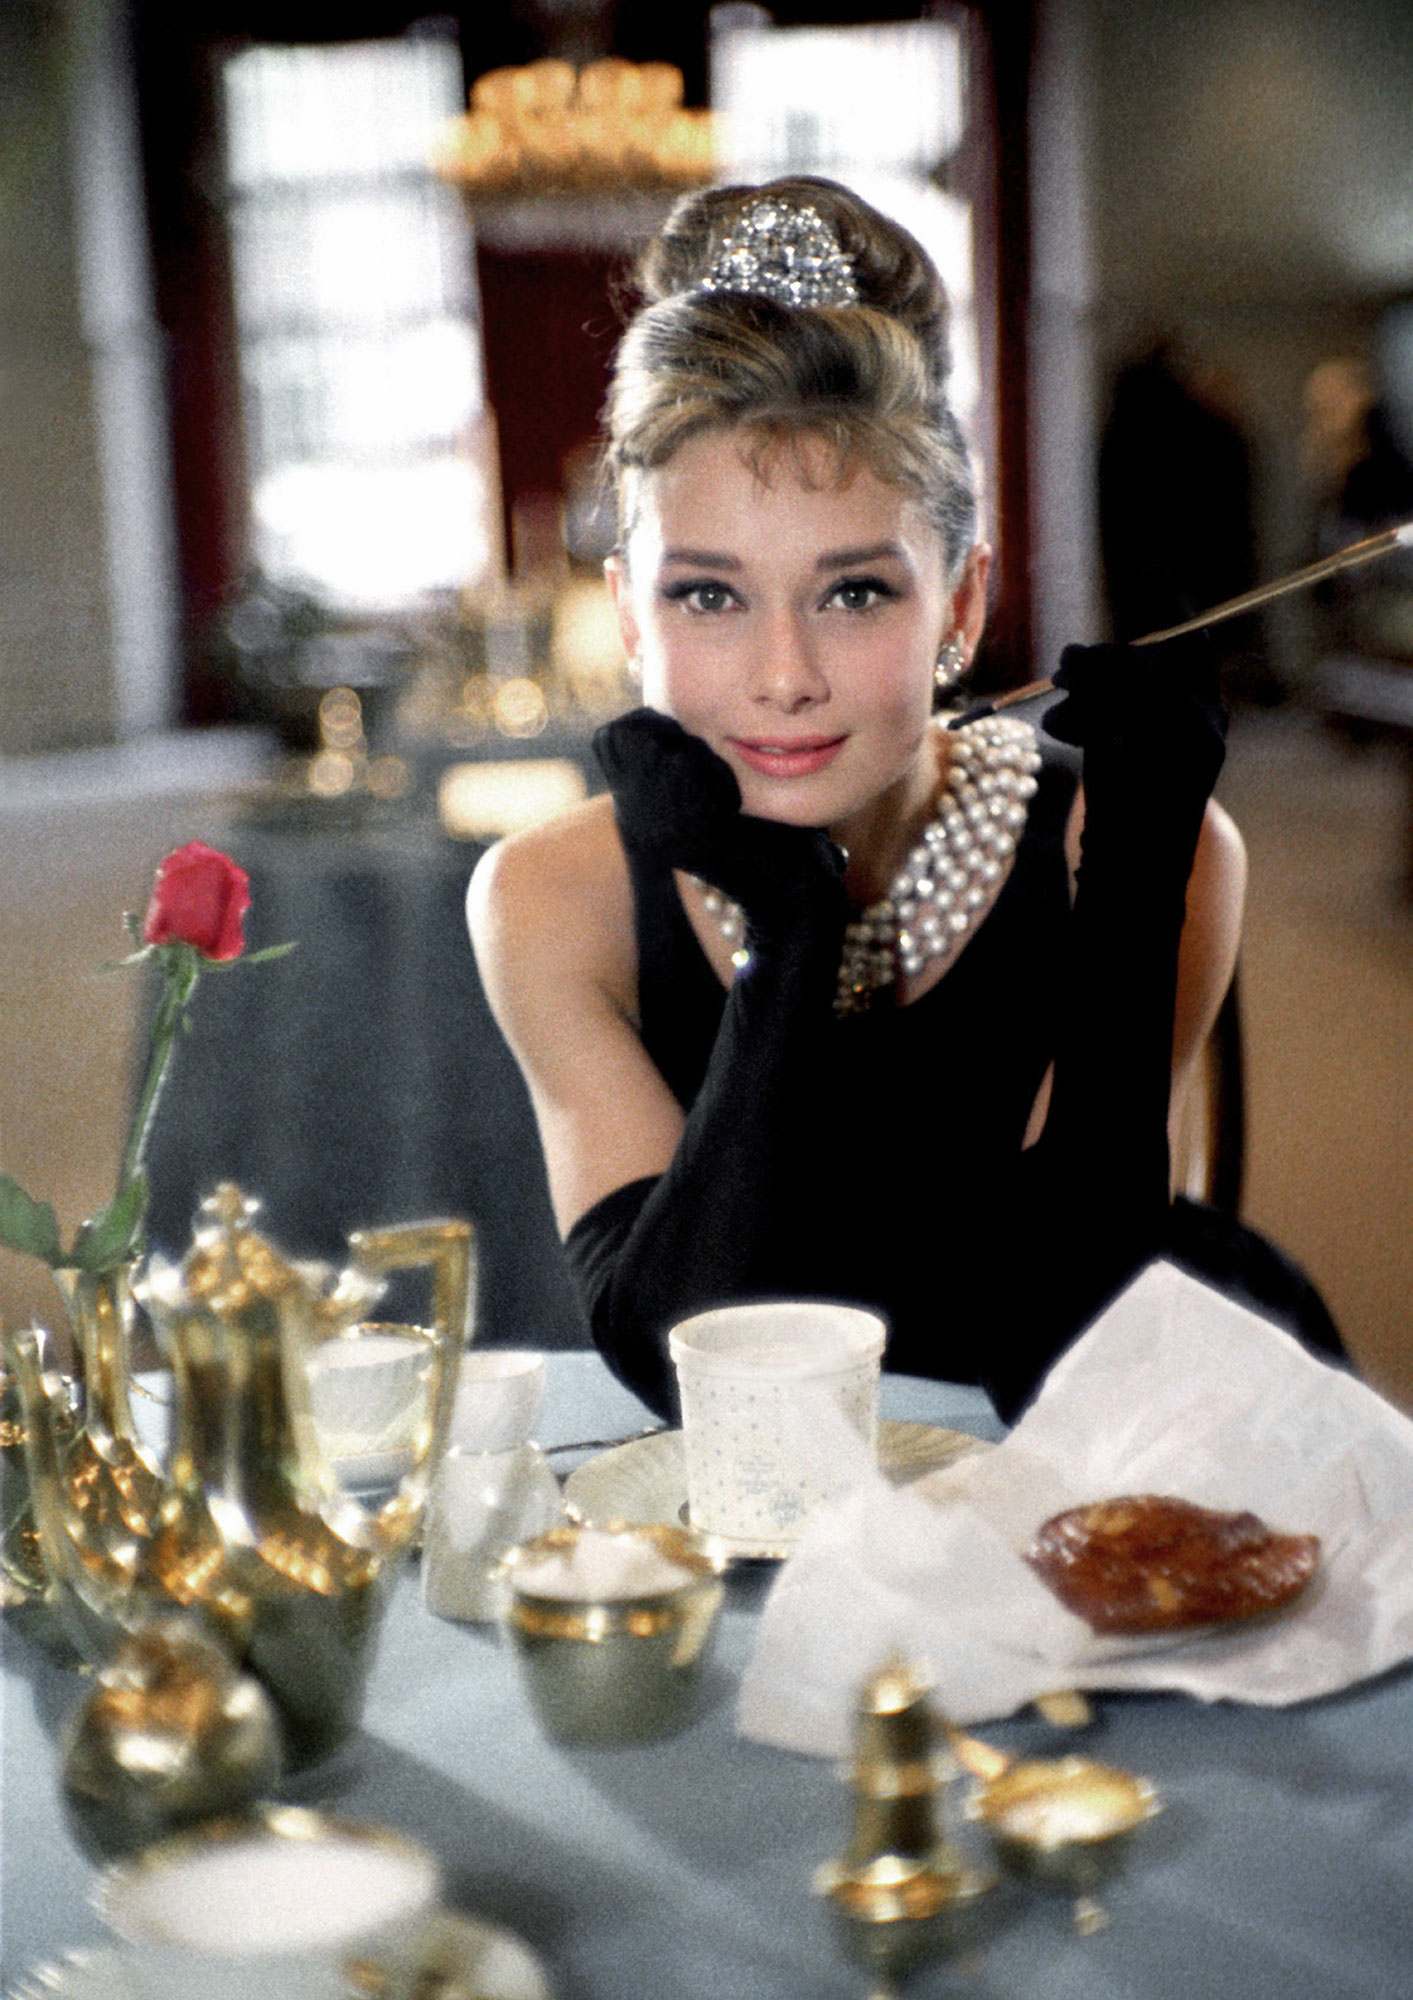 Stars You Wouldn't Expect to Be Grammy Nominees or Winners - The late Breakfast at Tiffany's actress won Best Spoken Word Album for Children in 1994 for Audrey Hepburn's Enchanted Tales . The win made her the first person to become an EGOT.